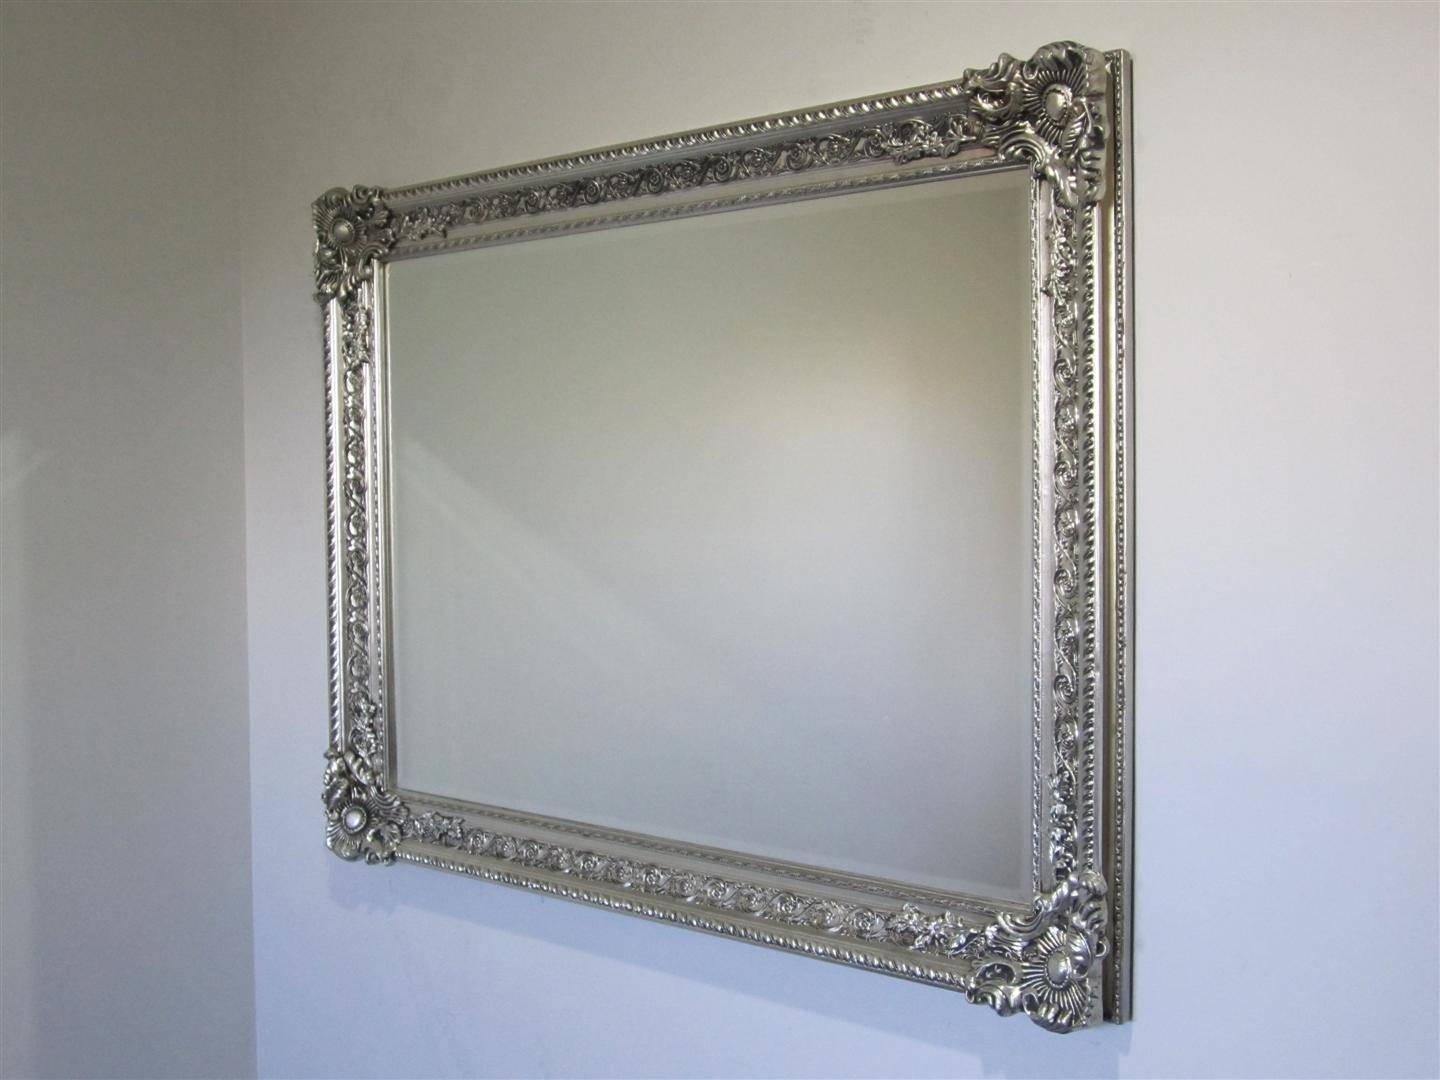 The Obelle Ornate Mirror 1200 X 950 - Freestyle Mirrors within Ornate Mirrors (Image 24 of 25)